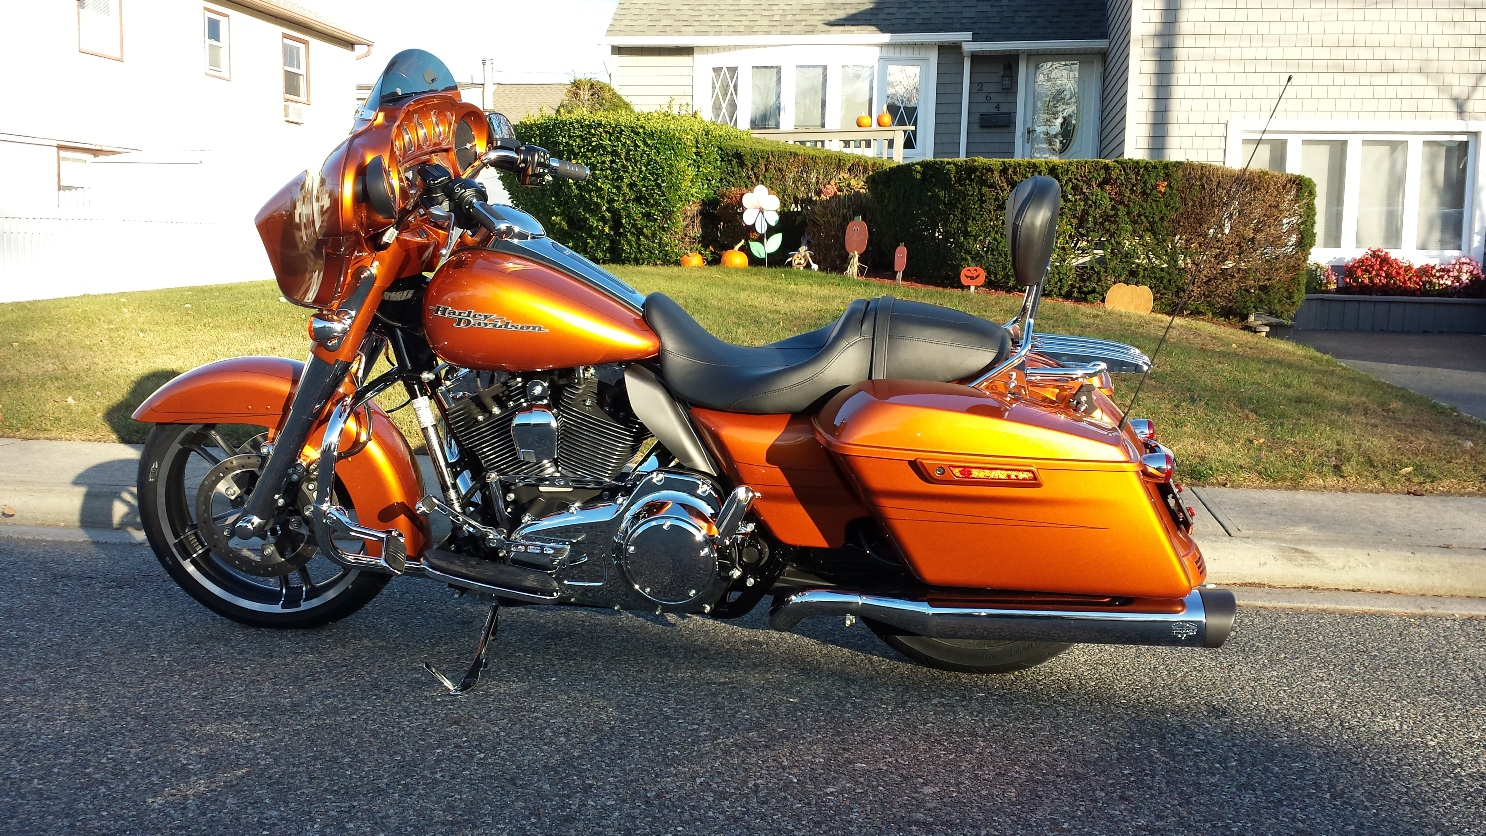 hight resolution of harley davidson wiring diagram also harley battery tender location on